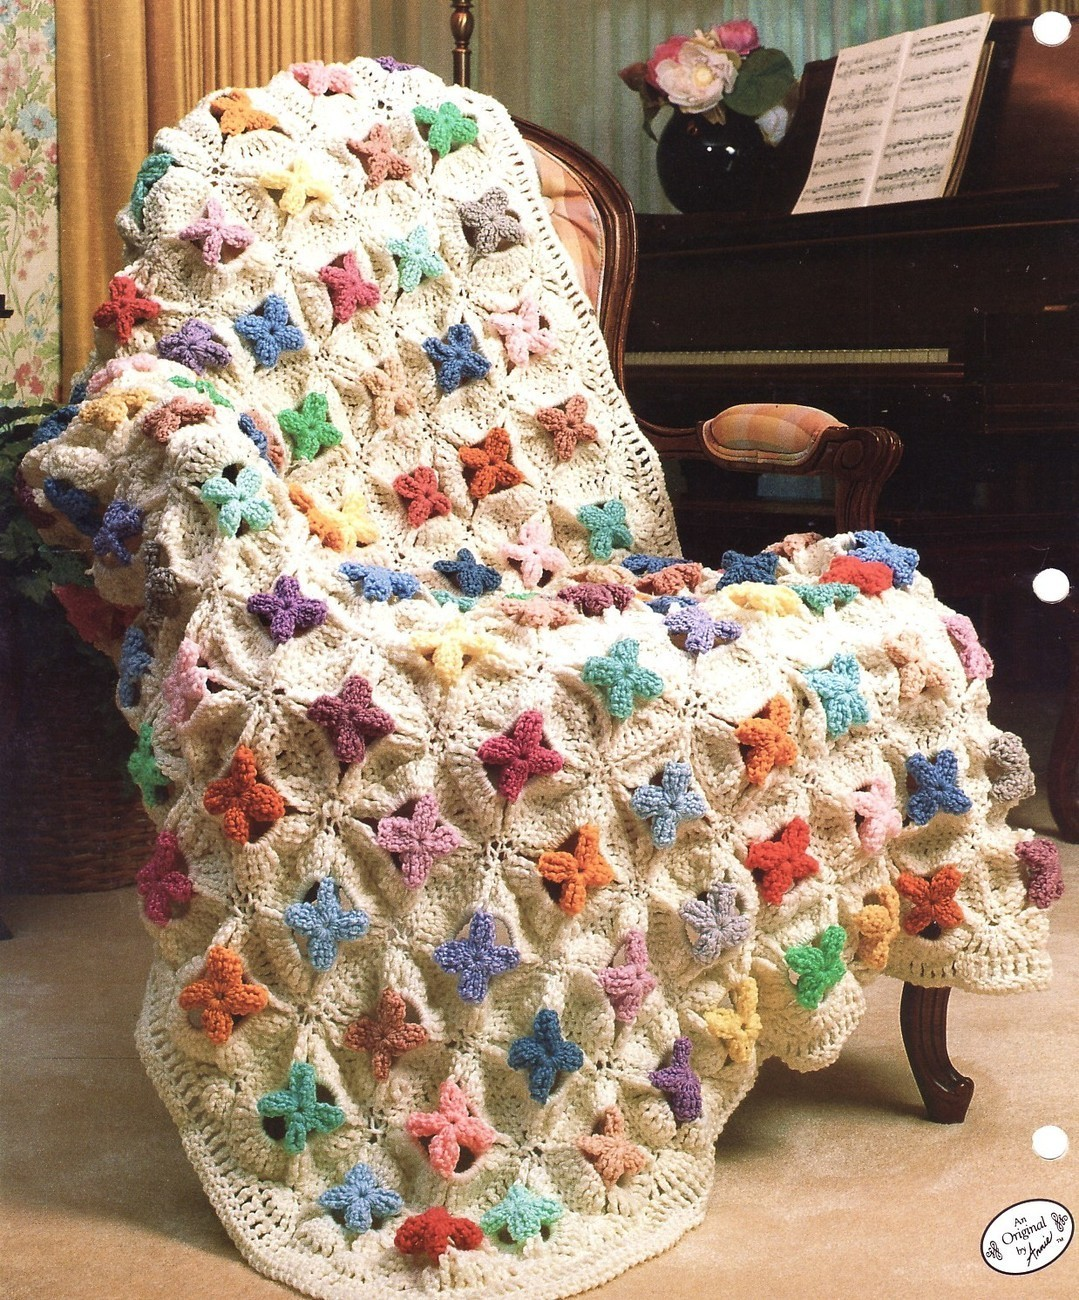 Navajo Quilt - Crochet Patterns, Free Crochet Pattern